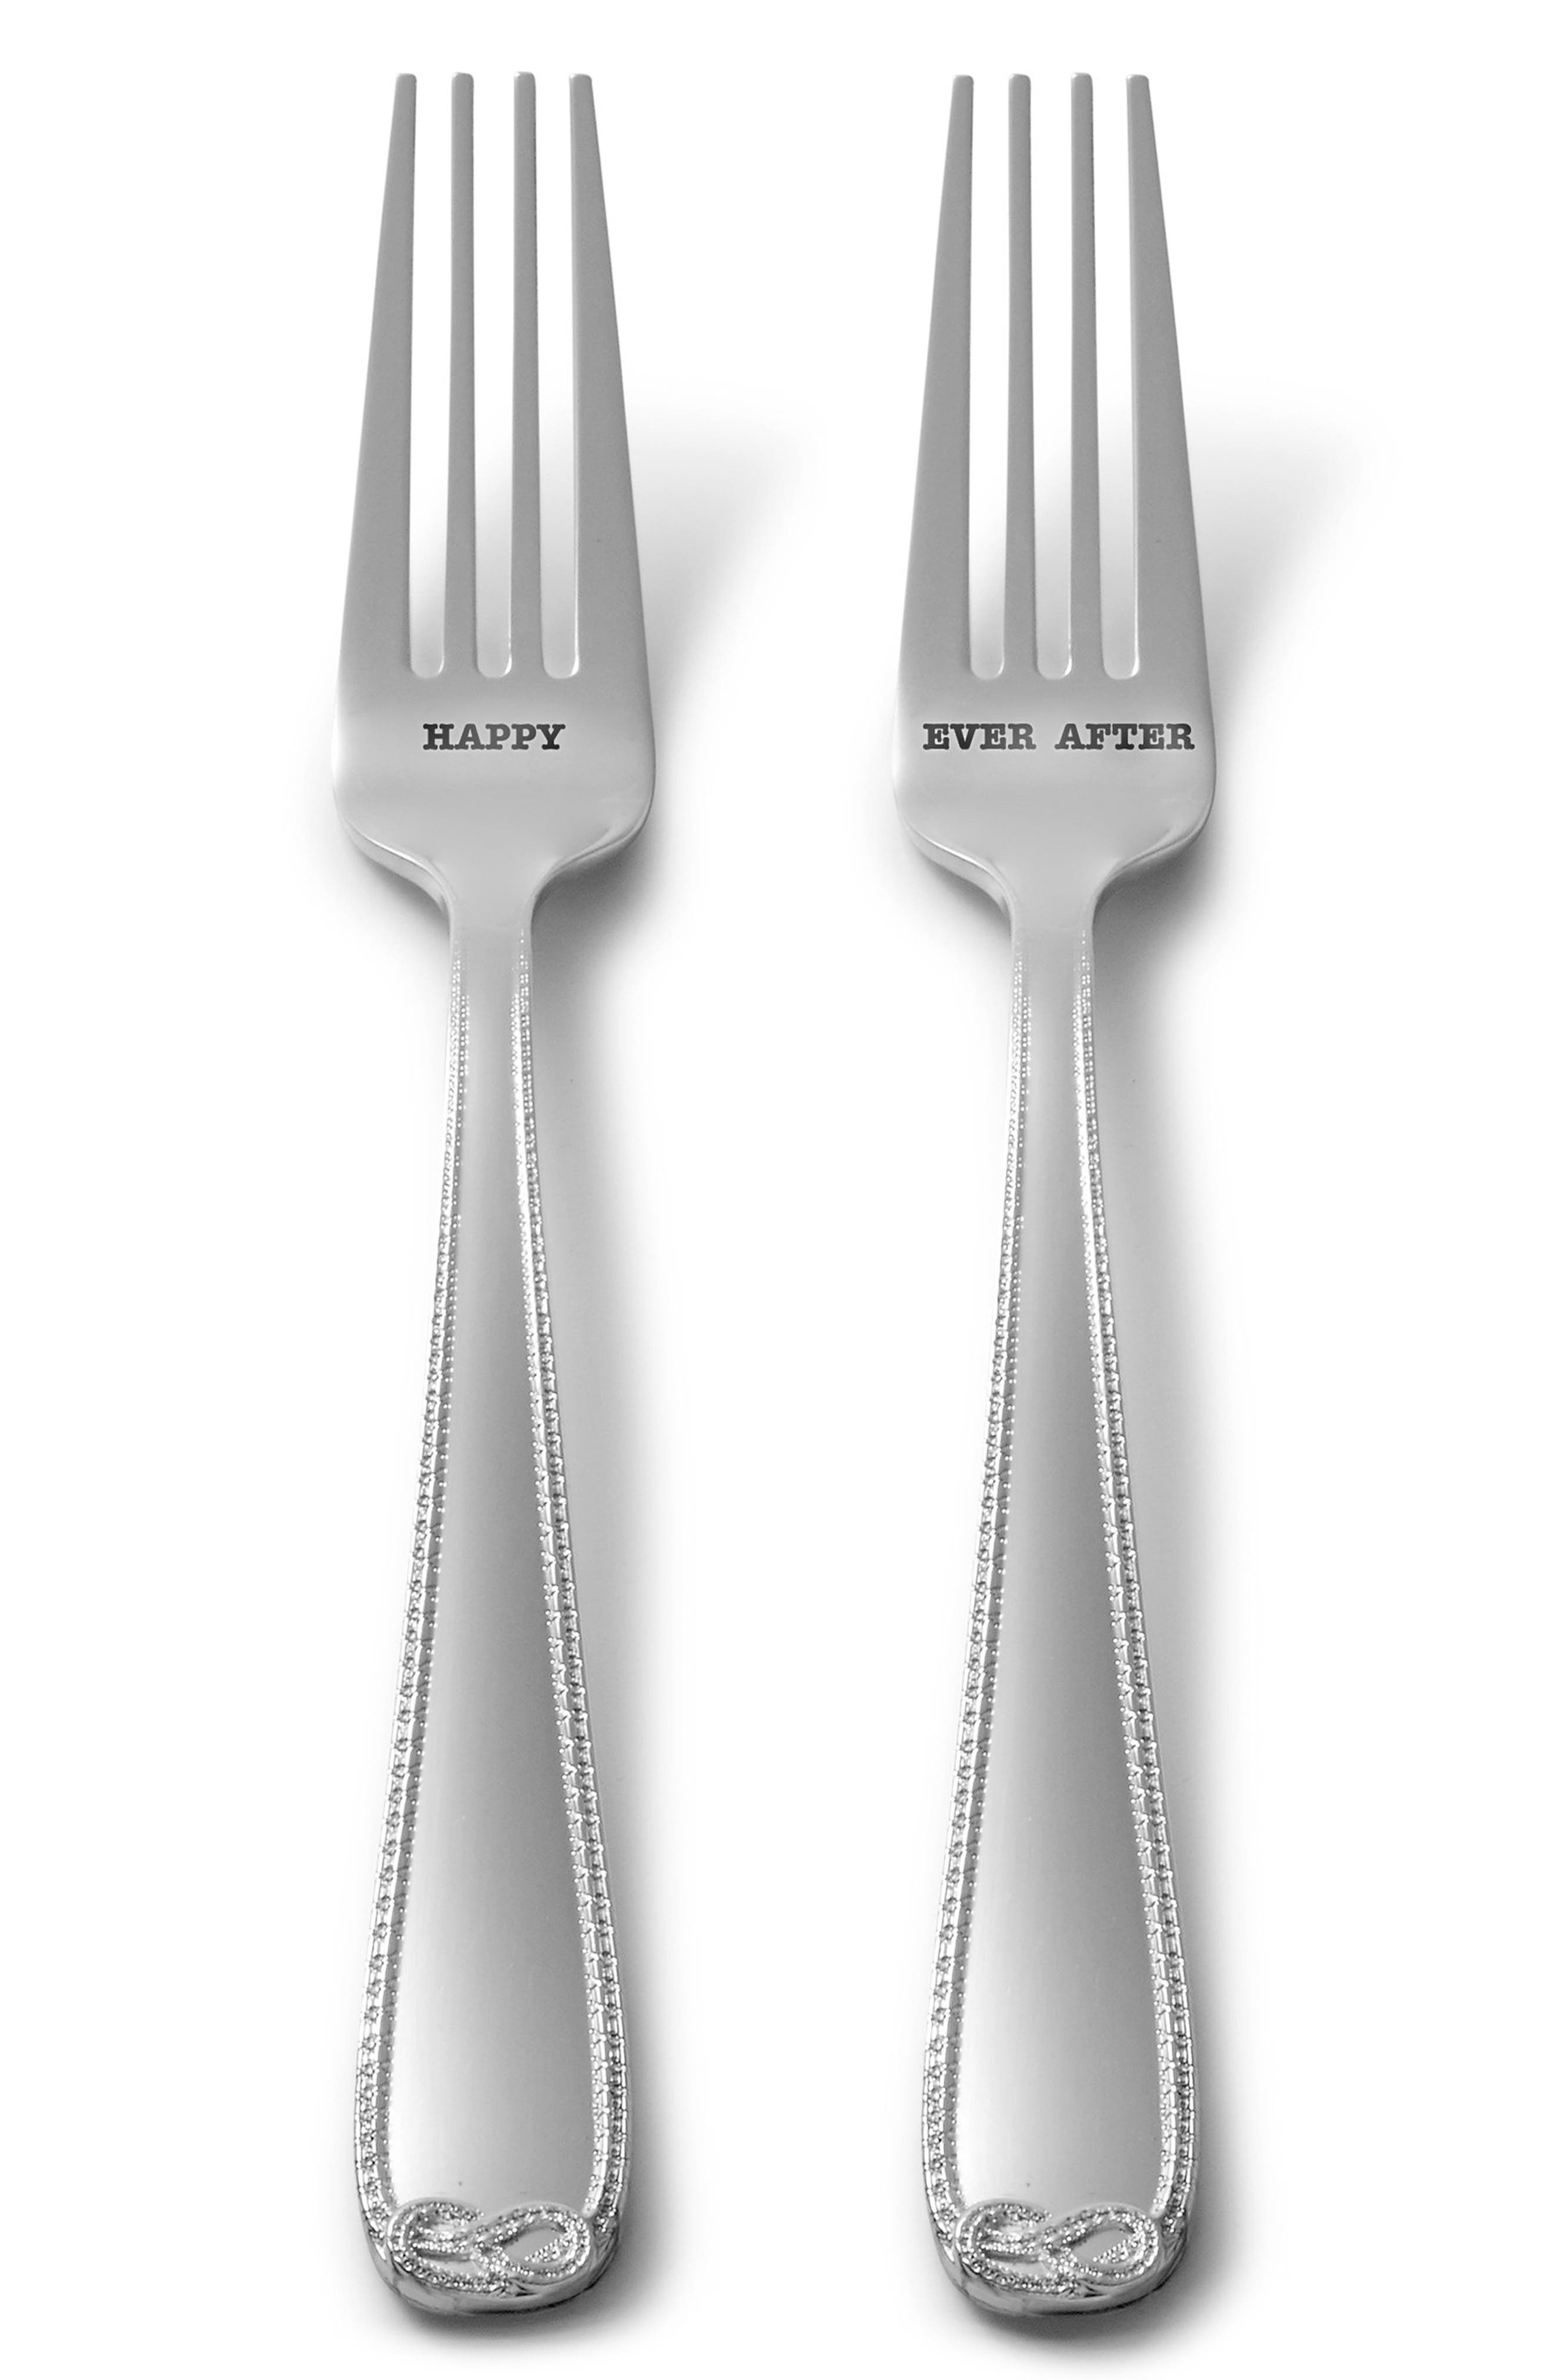 Main Image - Vera Wang x Wedgwood Infinity Happy Ever After Set of 2 Silver Plated Forks